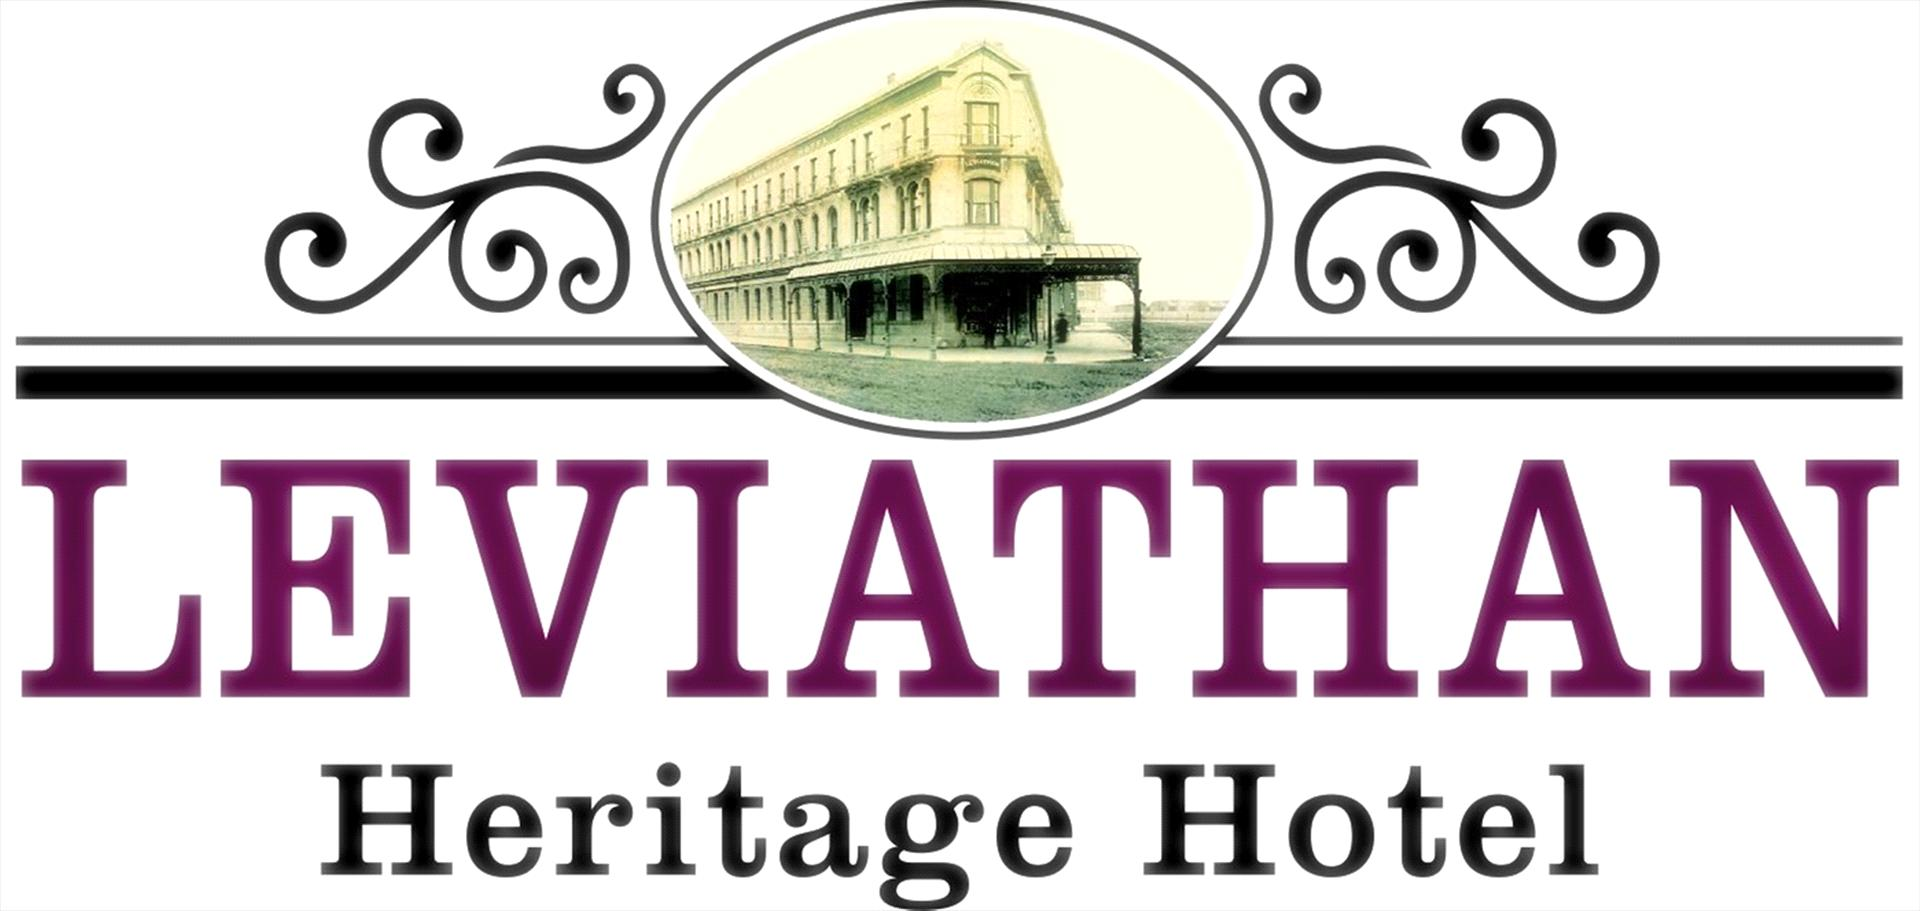 Leviathan Heritage Hotel